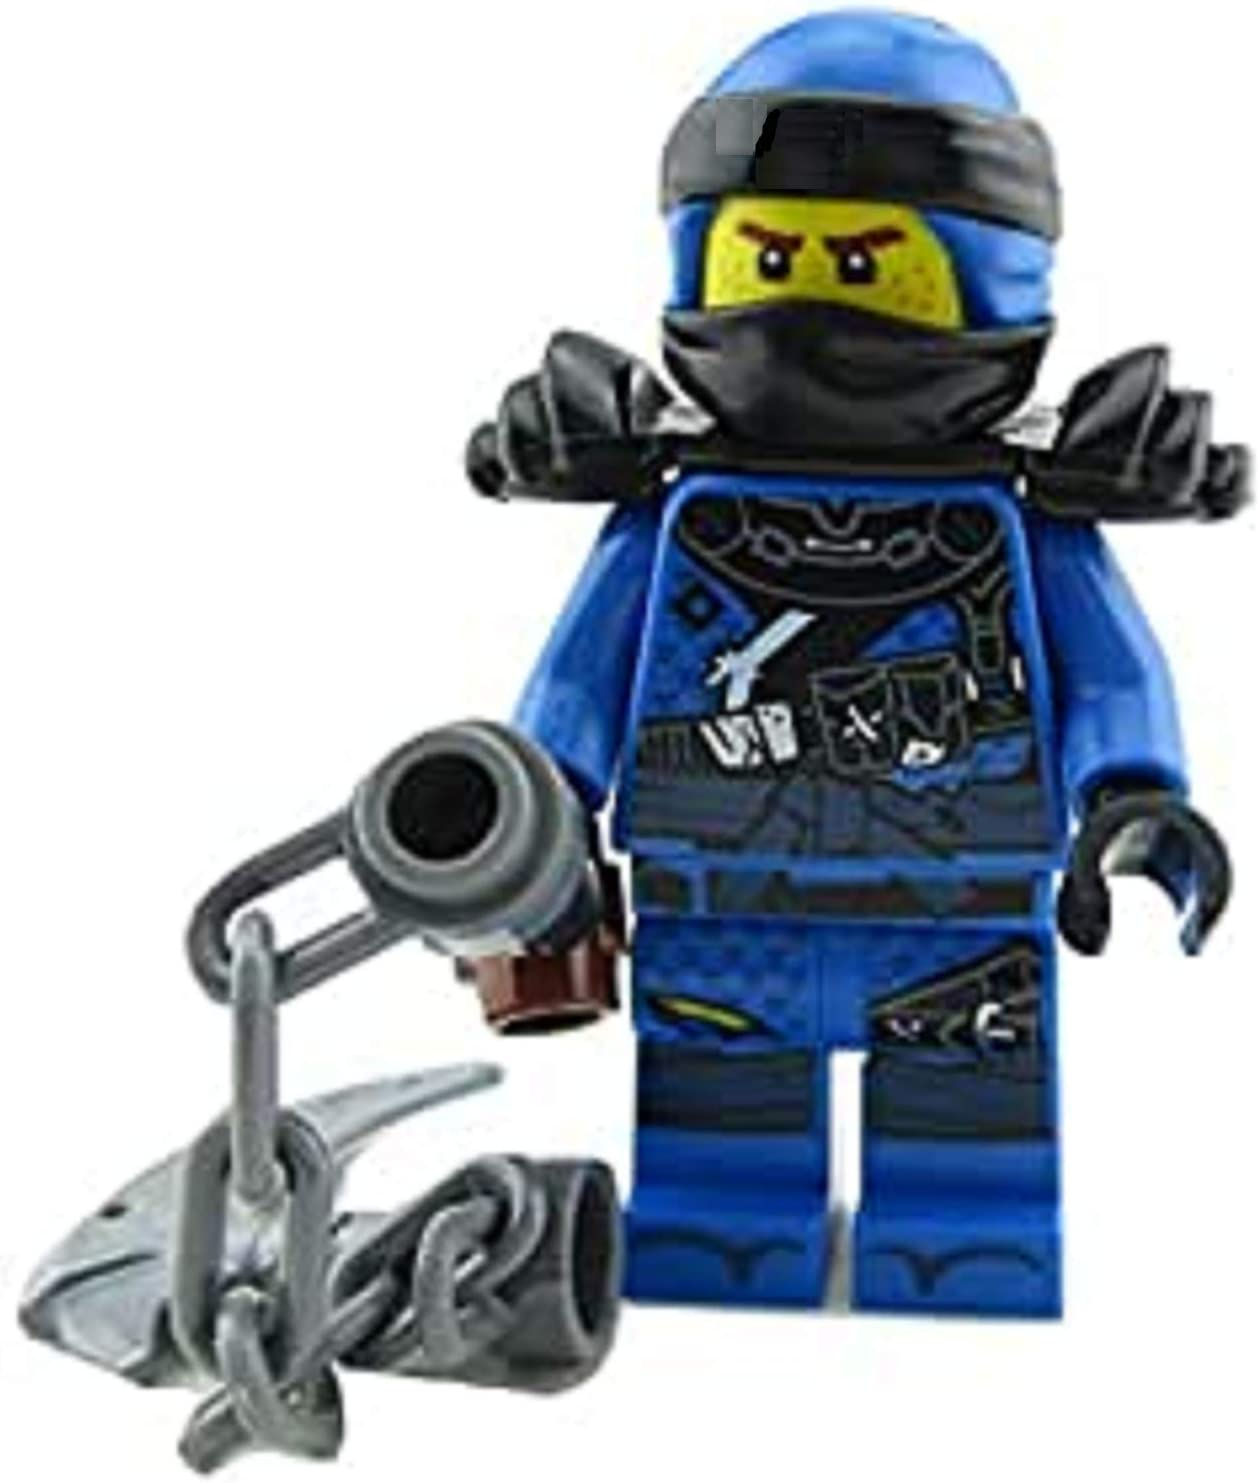 LEGO Ninjago - Jay Hunted with Chain Weapon (Limited Edition Foil Pack) 891946